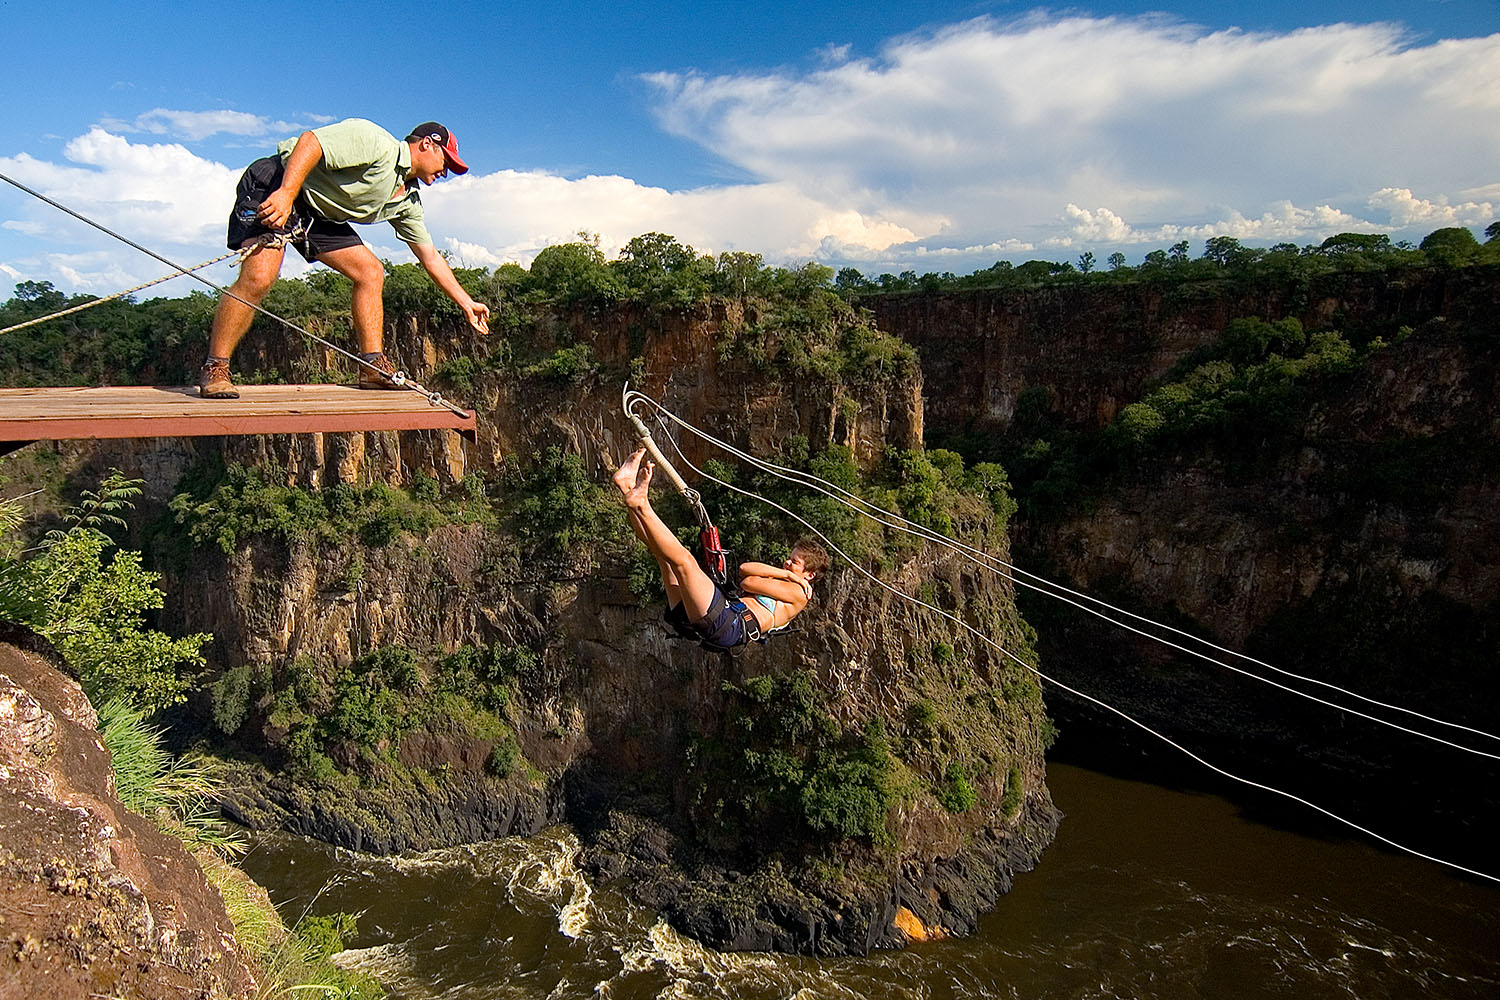 zambia points of interest malawian-style-malawi-adventures-experiences-specialist-tour-operator-victoria-falls-gorge-swing